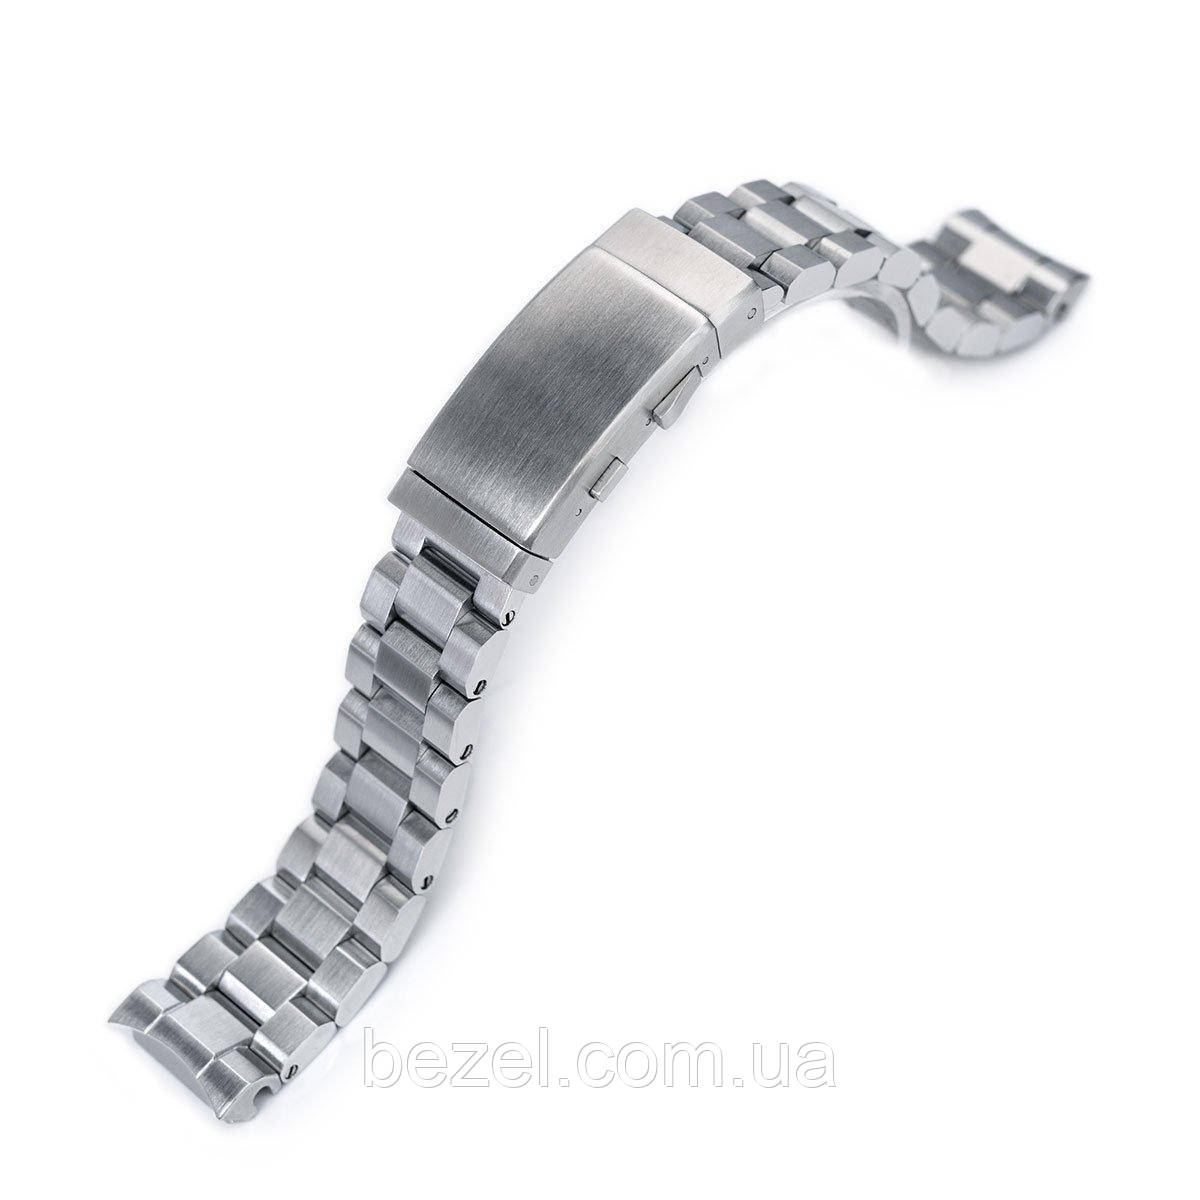 20mm Hexad Oyster 316L Stainless Steel Watch Band for Seiko MM300 Prospex Marinemaster SBDX001, Wetsuit Ratchet Buckle